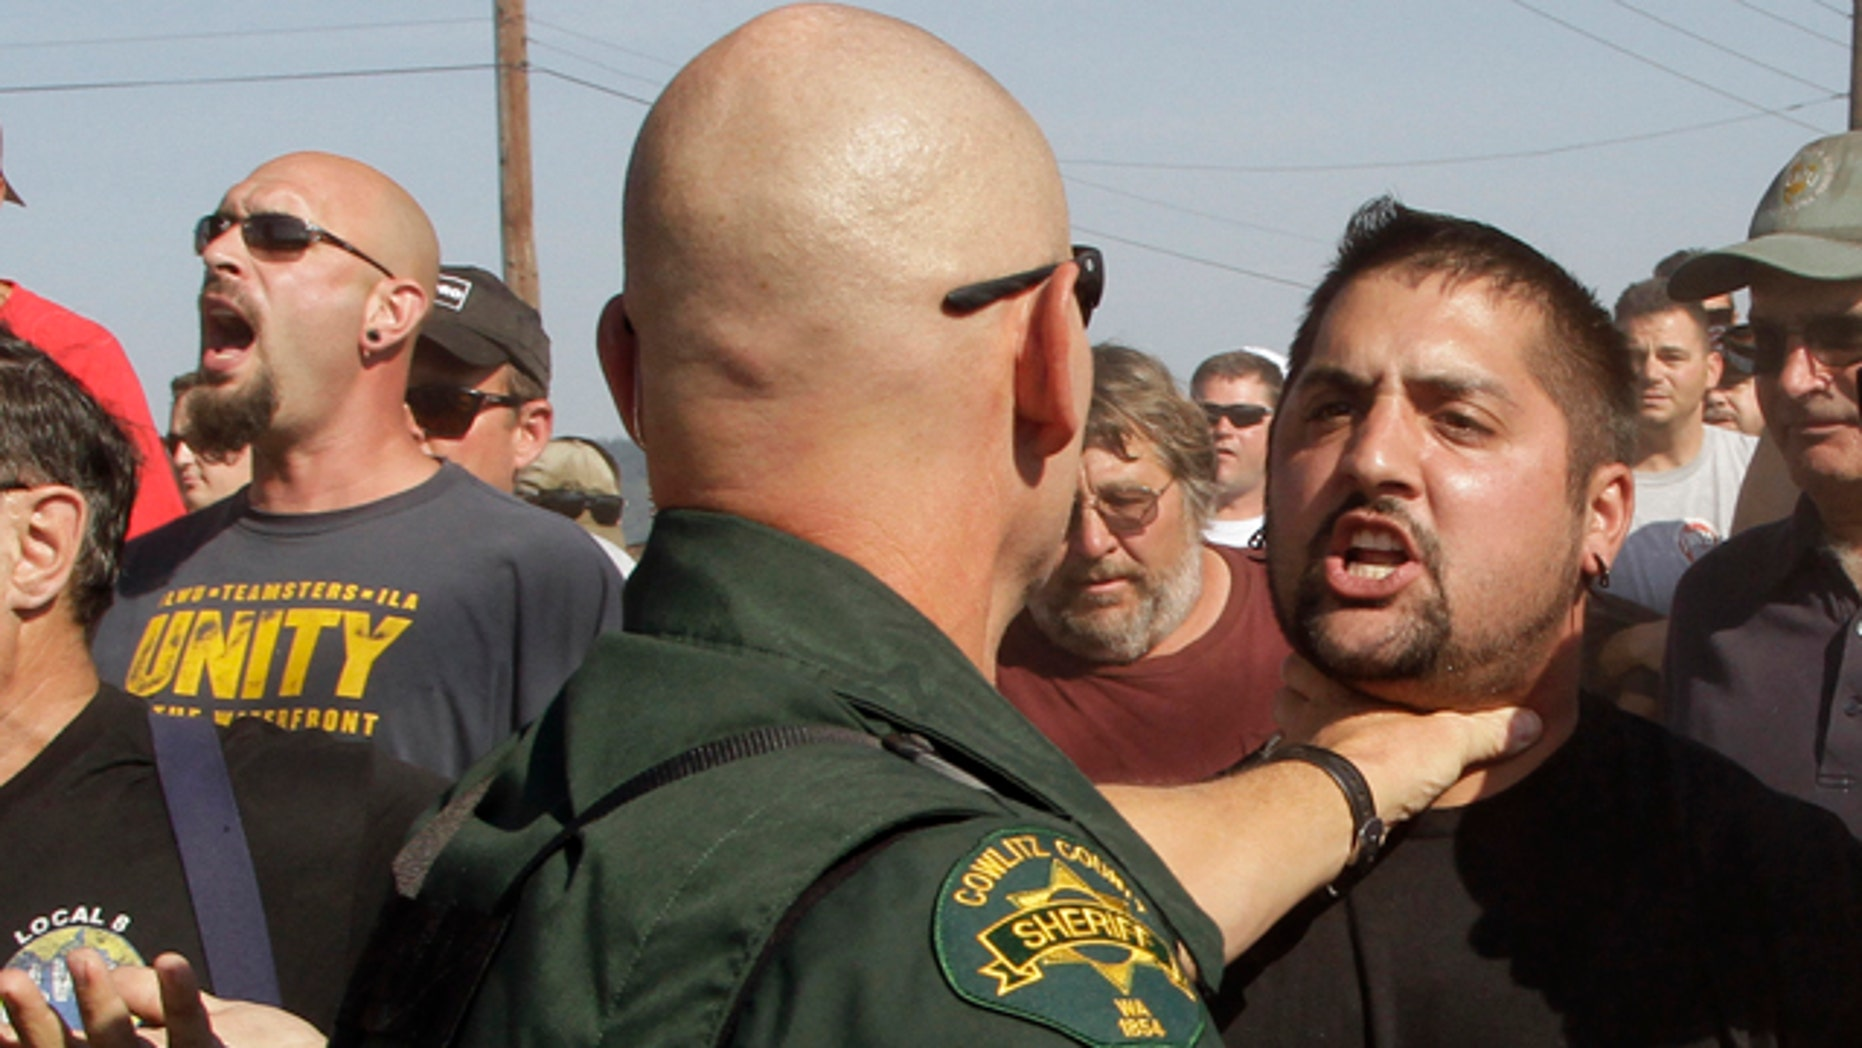 Sept. 7, 2011: A Cowlitz County Sheriff grabs a union worker by the throat as police move in on several hundred union workers blocking a grain train in Longview, Wash. Longshoremen blocked the train as part of an escalating dispute about labor at the EGT grain terminal at the Port of Longview.